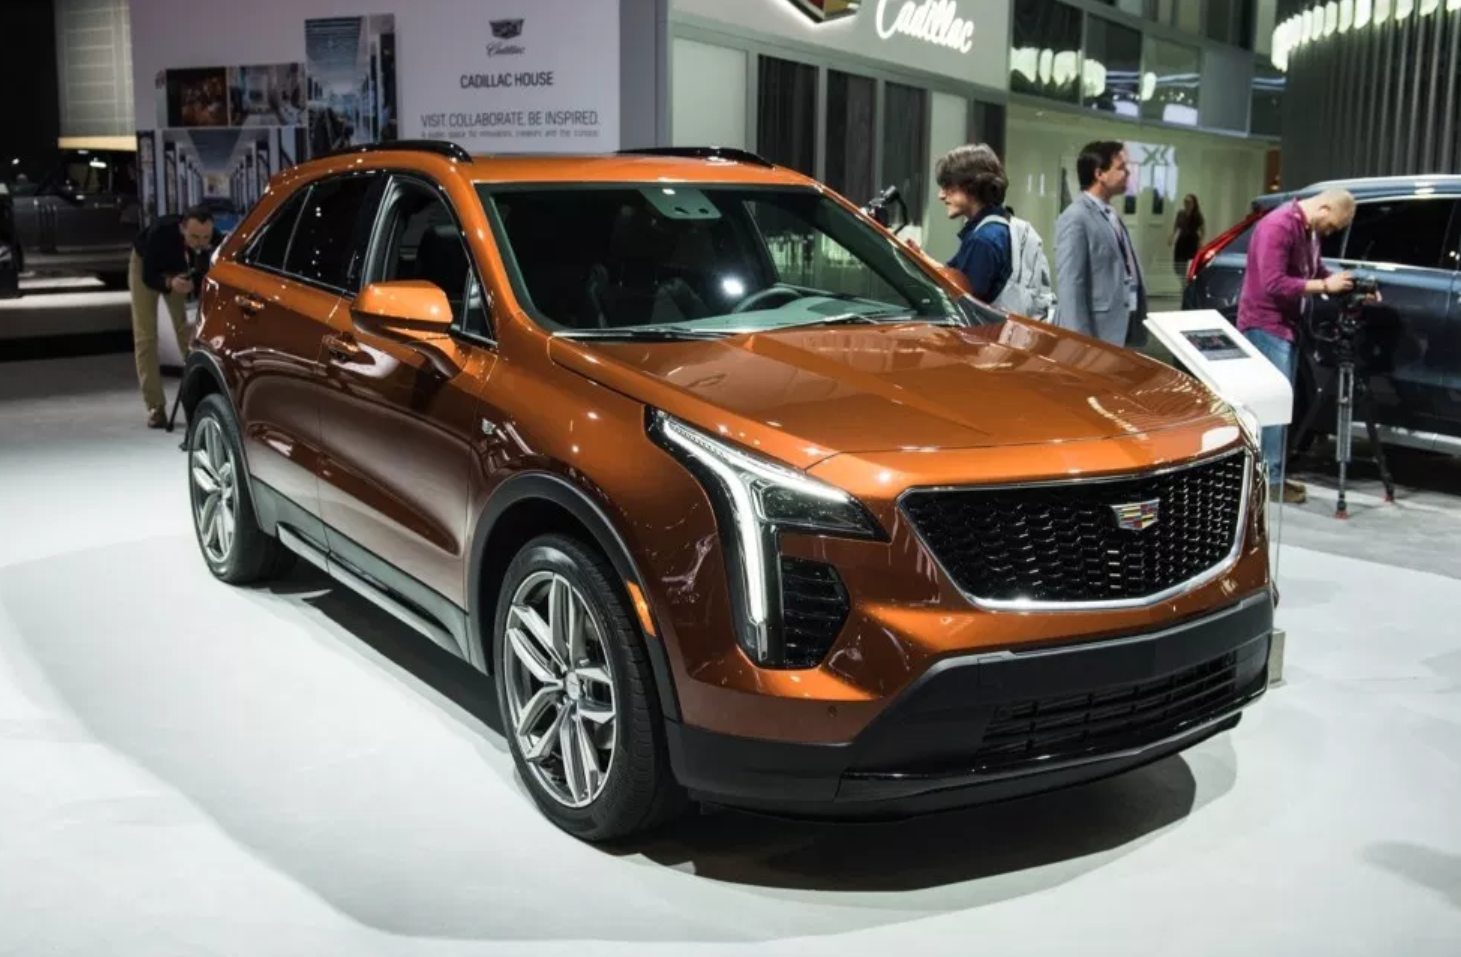 2020 Cadillac XT4 Redesign, Specs, And Price >> 2020 Cadillac Xt4 Redesign Price Release Date This Approaching